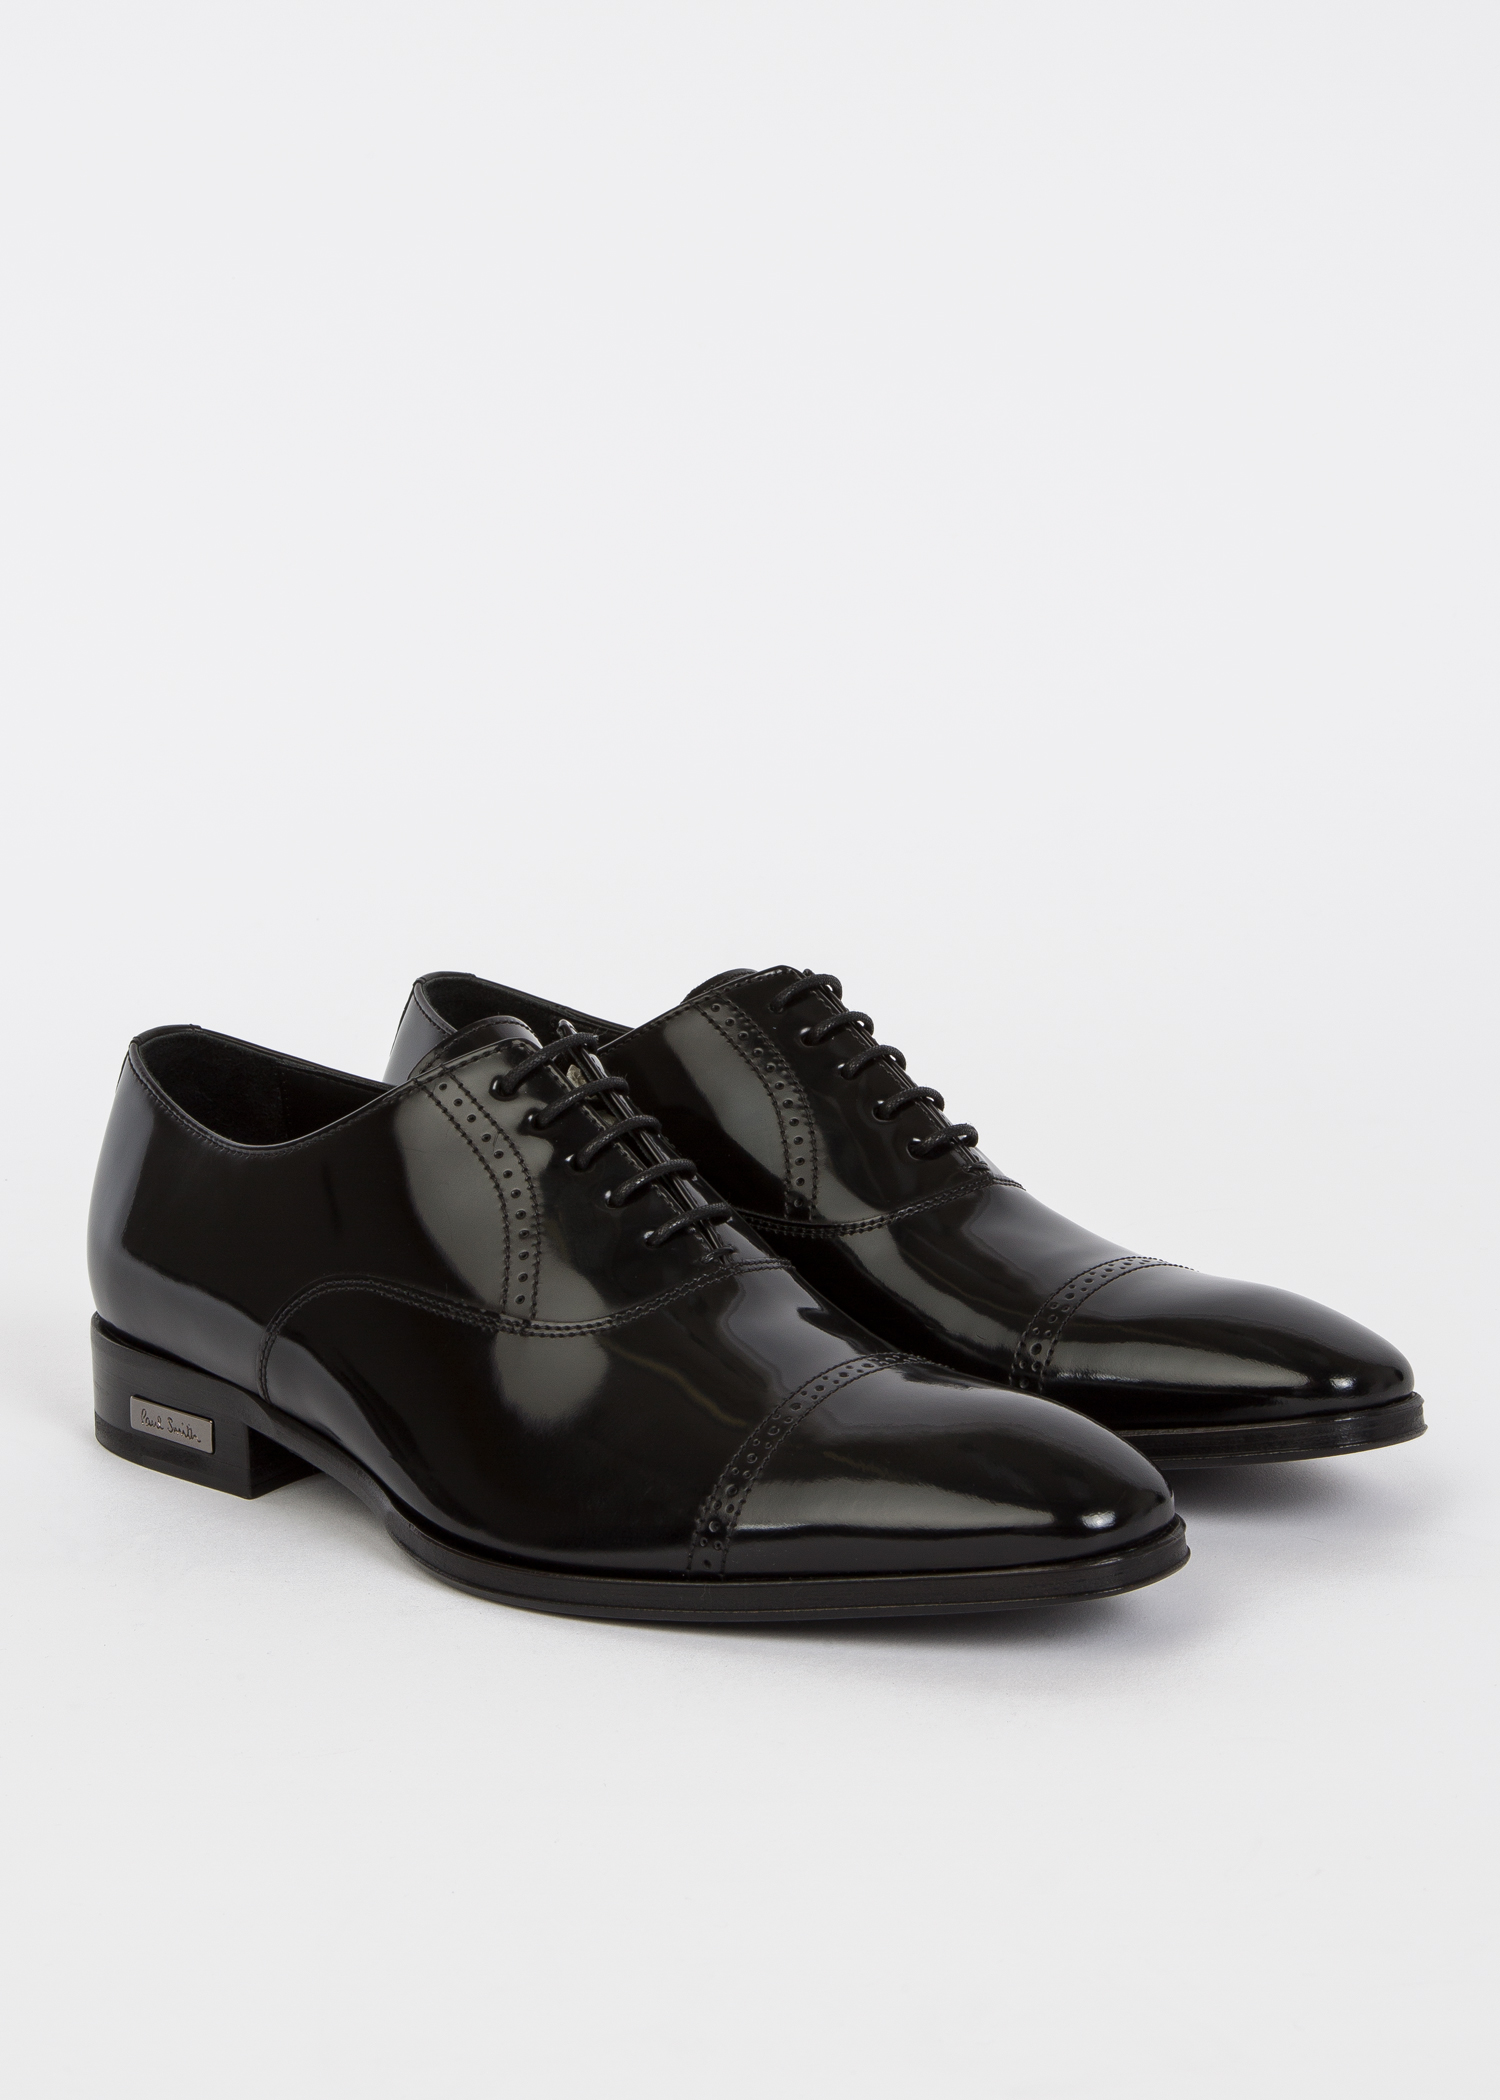 950ff4758e Angled view - Men s Black Patent Leather  Lord  Oxford Shoes ...